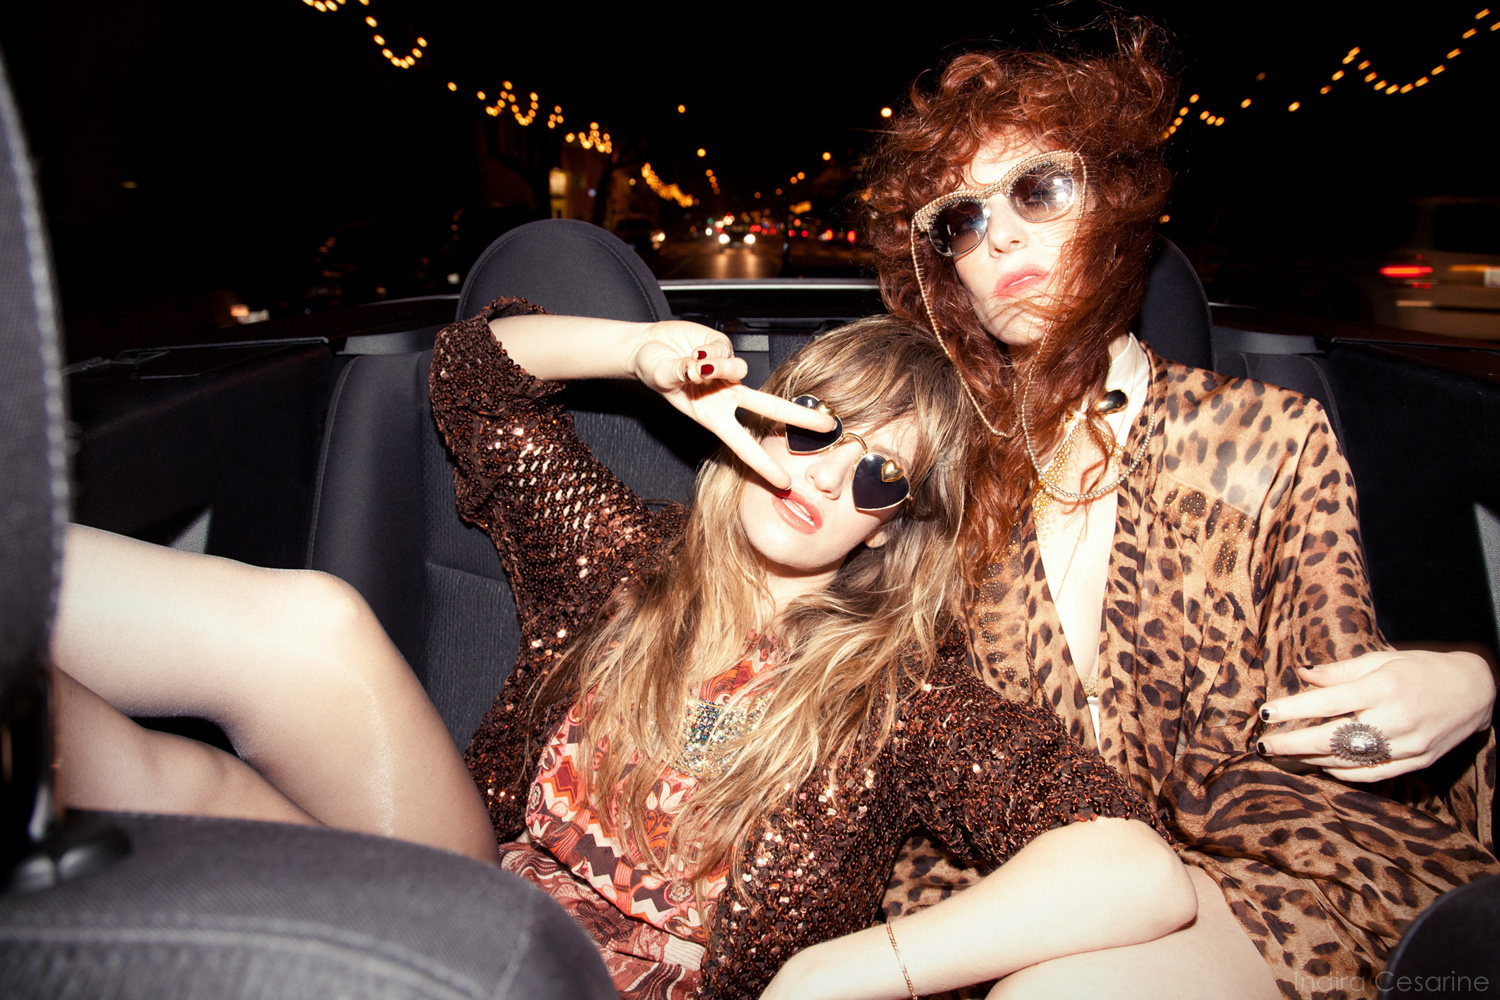 Deap-Vally-Photography-by-Indira-Cesarine-004.jpg